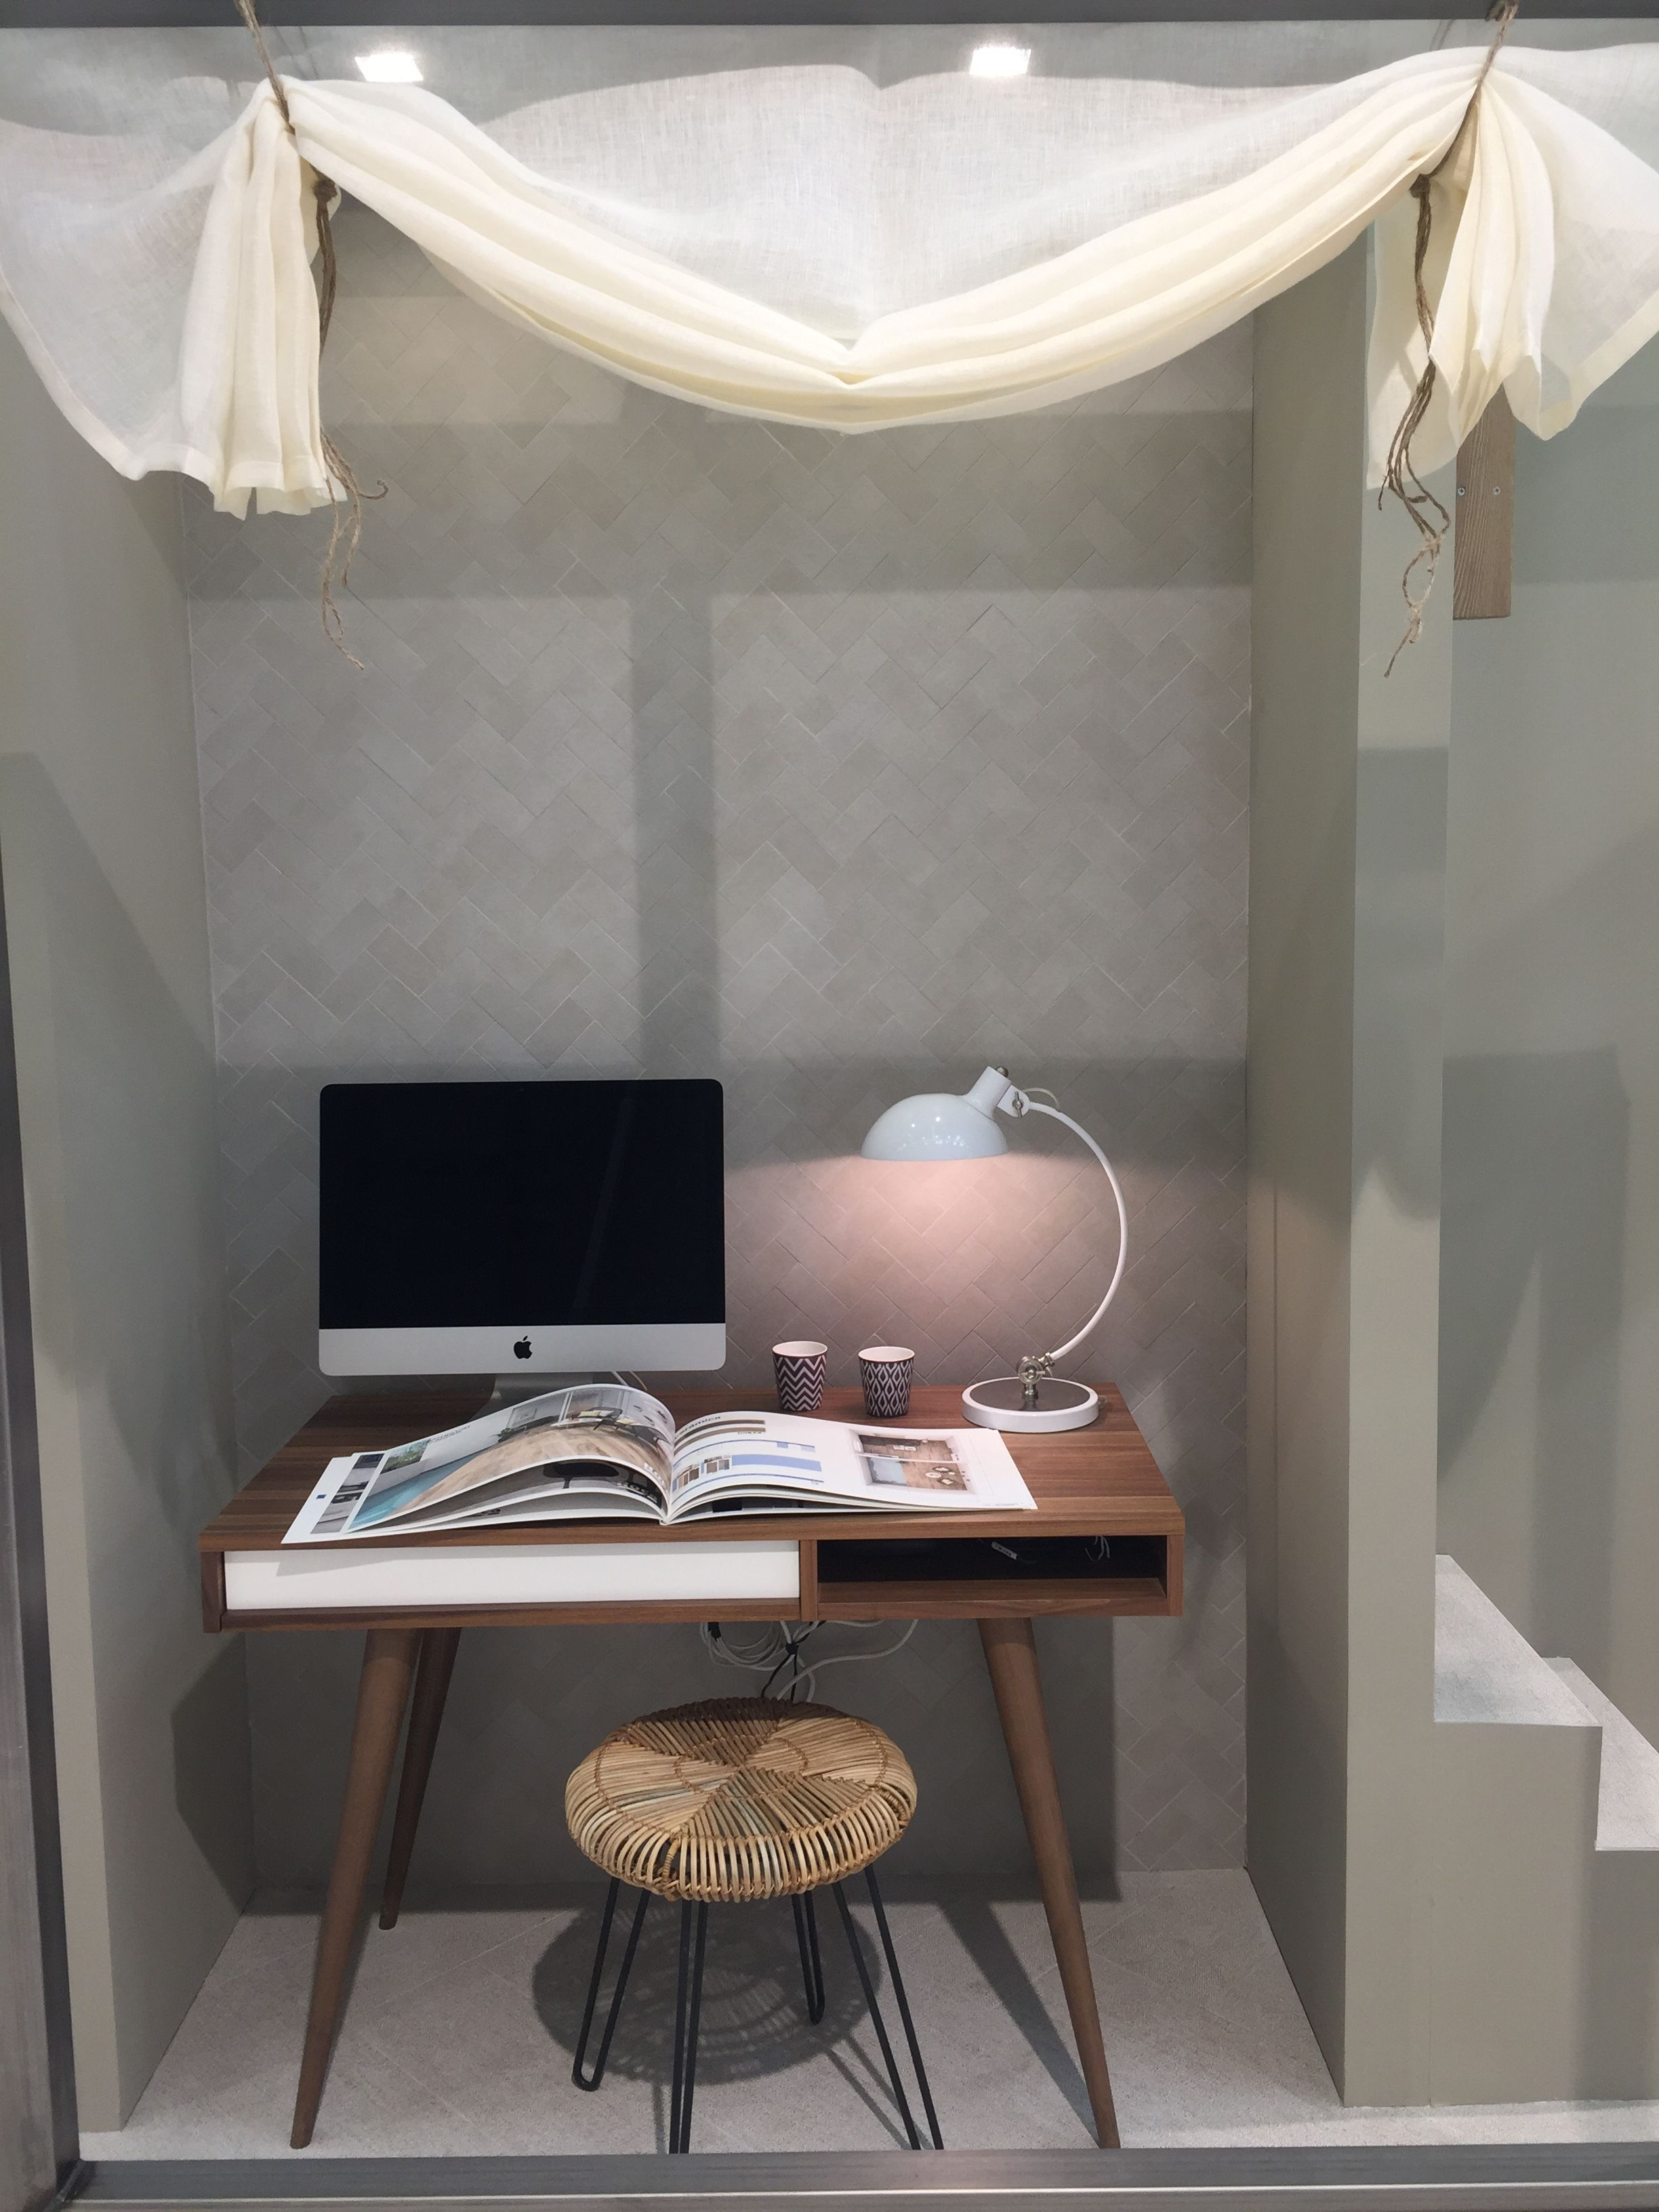 Roca at cersaie 2016 roca at cersaie 2016 pinterest tile roca tile usa is a world wide leader in manufacturing distributing and marketing of high quality ceramic tiles our products offer solutions for all uses dailygadgetfo Image collections